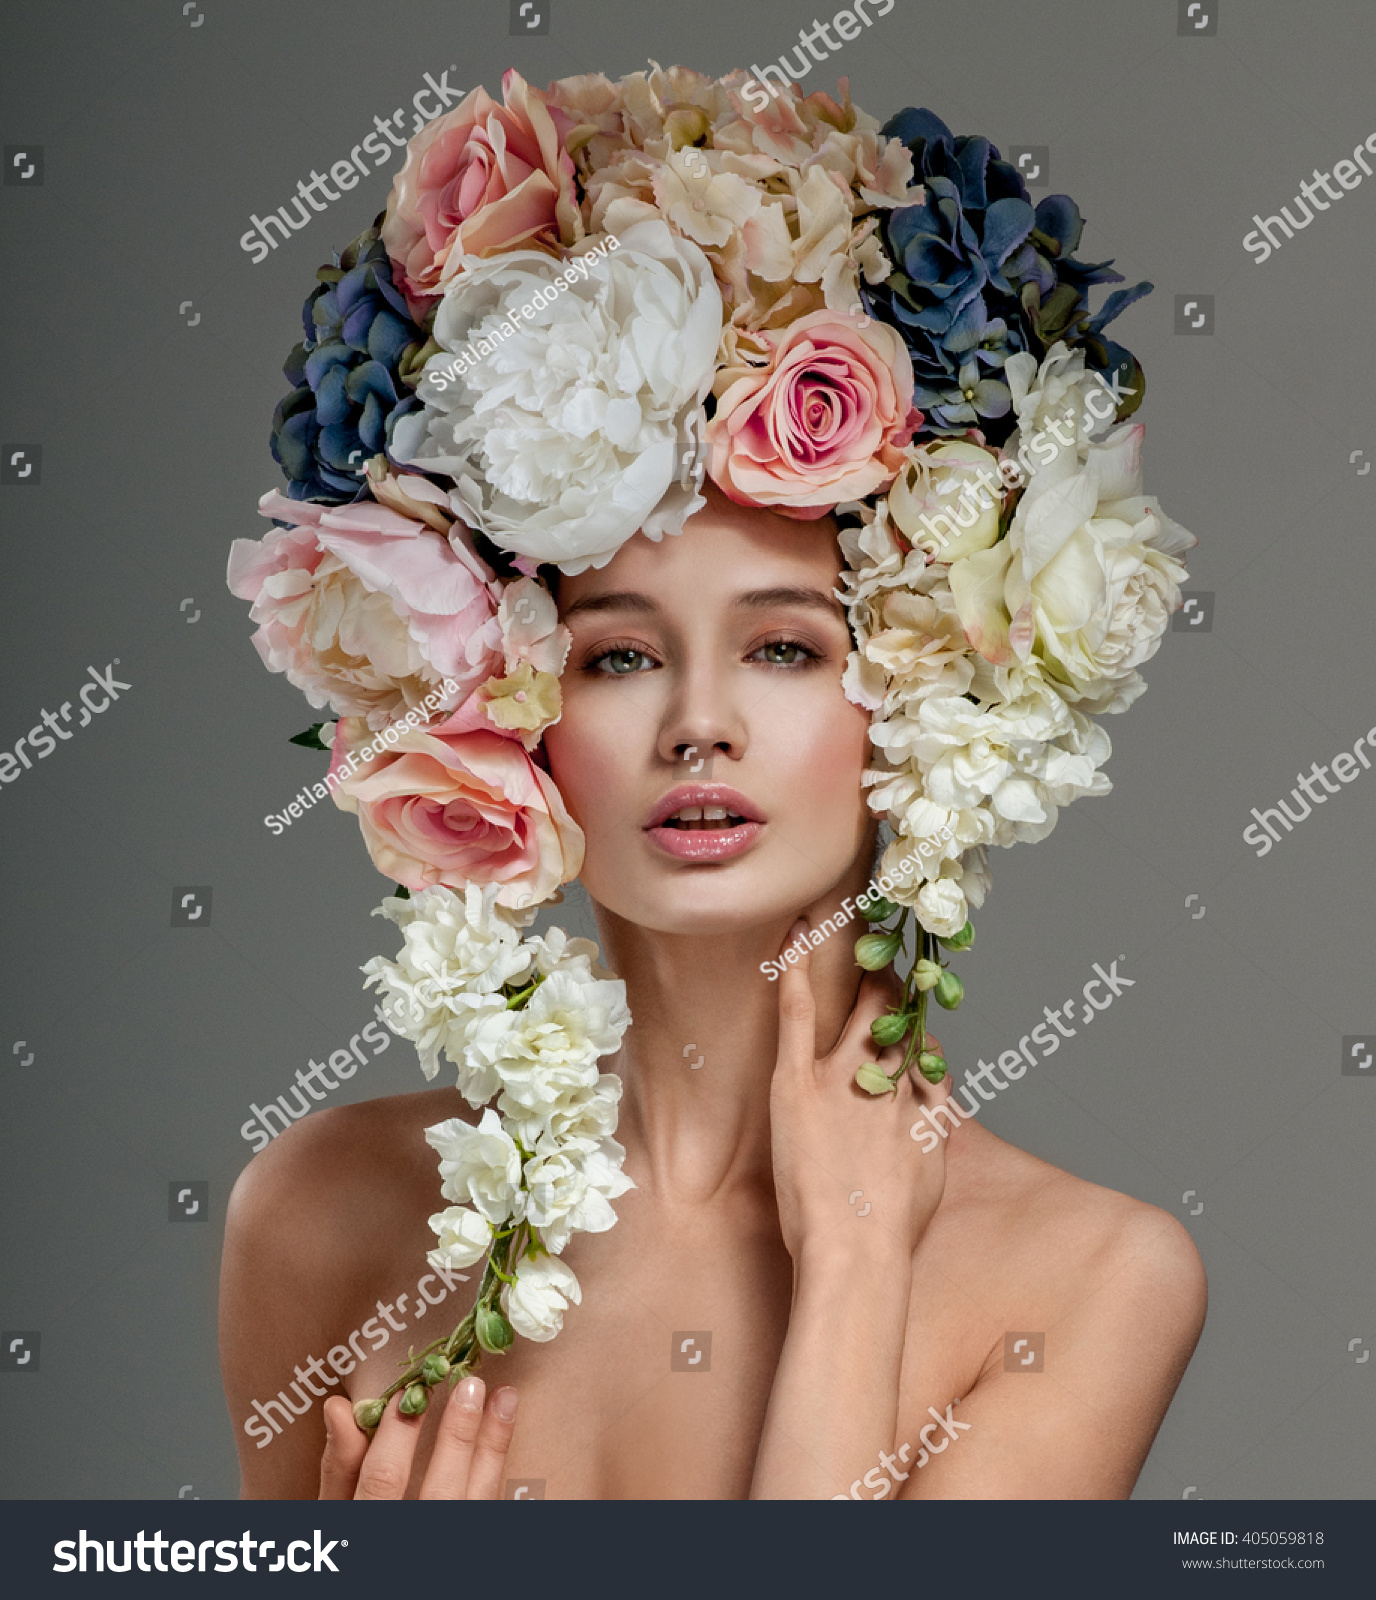 Beautiful woman flowers her hair bouquet stock photo safe to use beautiful woman with flowers in her hair bouquet of beautiful flowers hairstyle with flowers izmirmasajfo